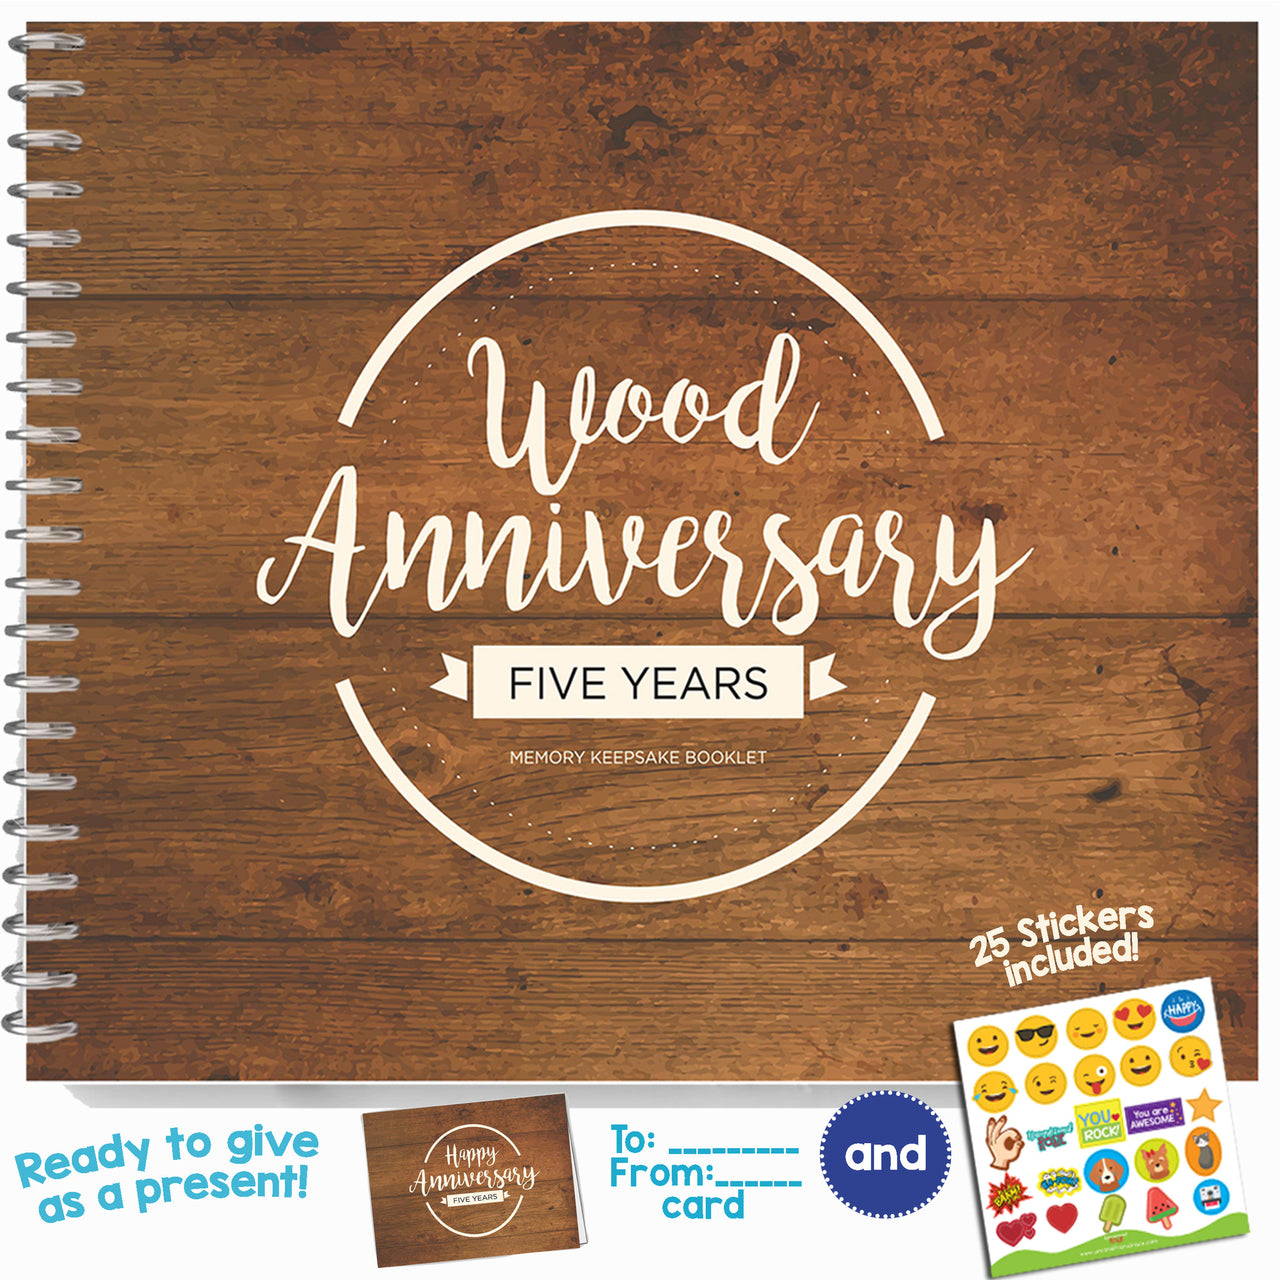 Five Year Booklet with Matching Card for Wood Anniversary